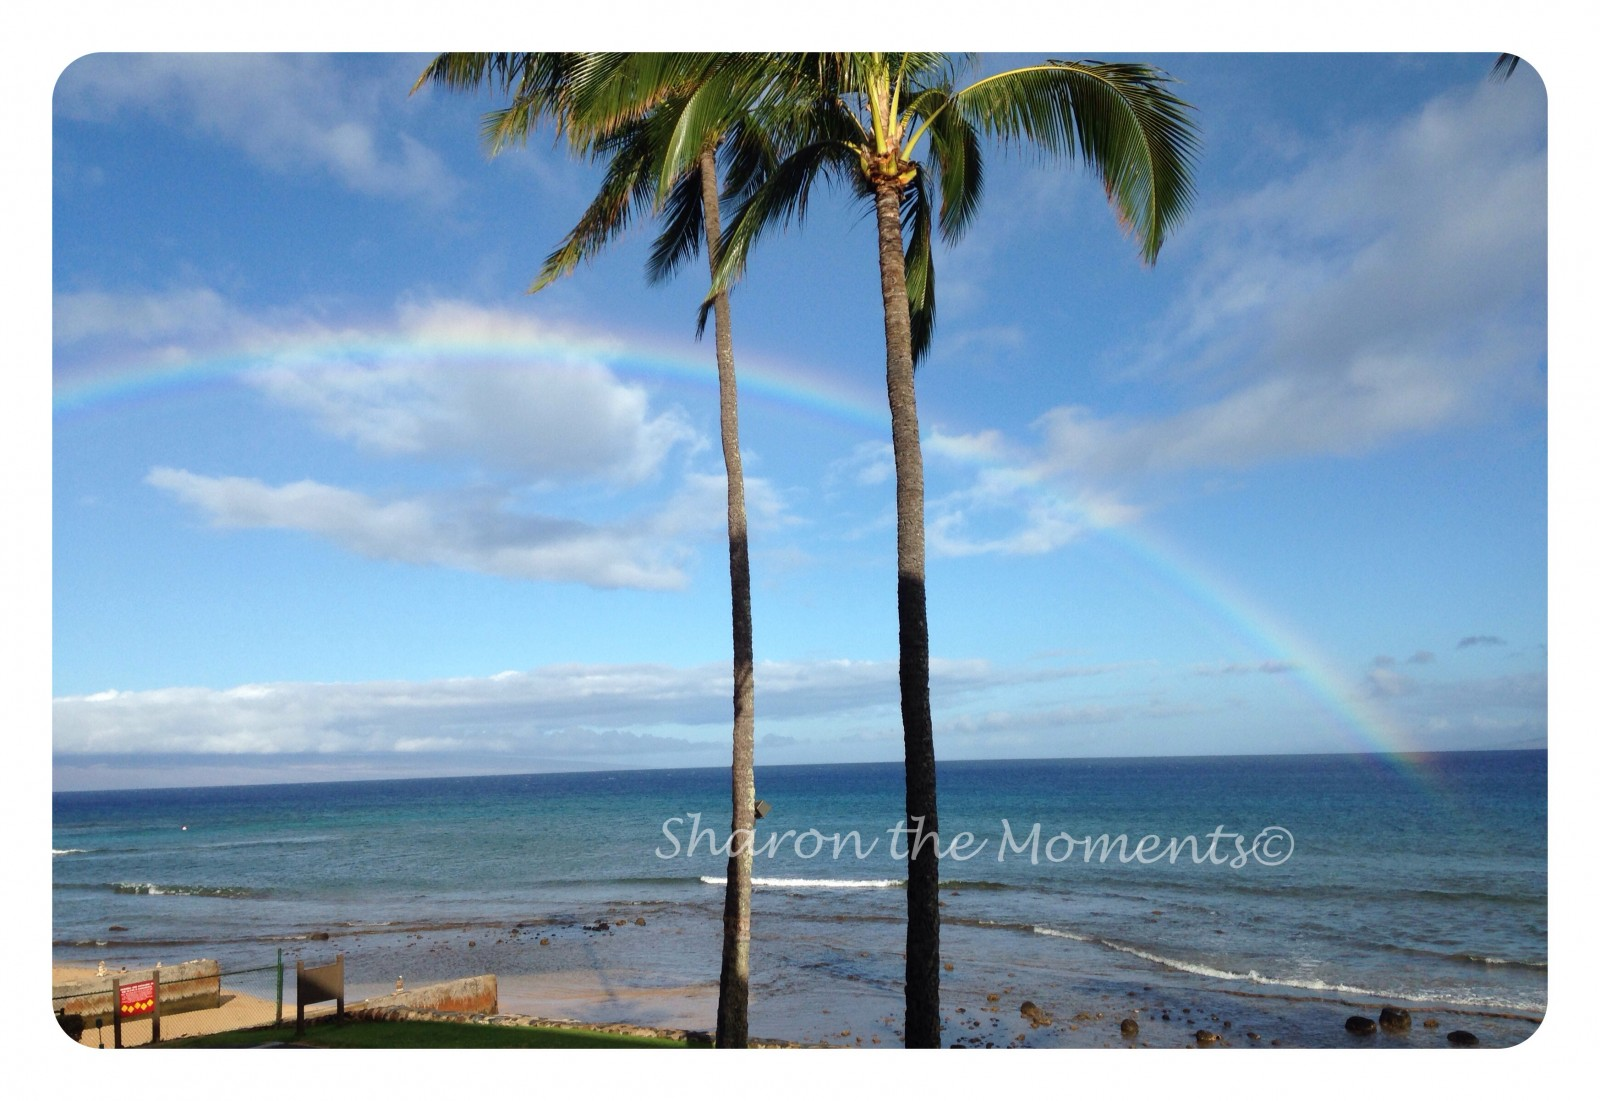 Papakea Resort in Maui Hawaii is Like Being Home| Sharon the Moments Blog